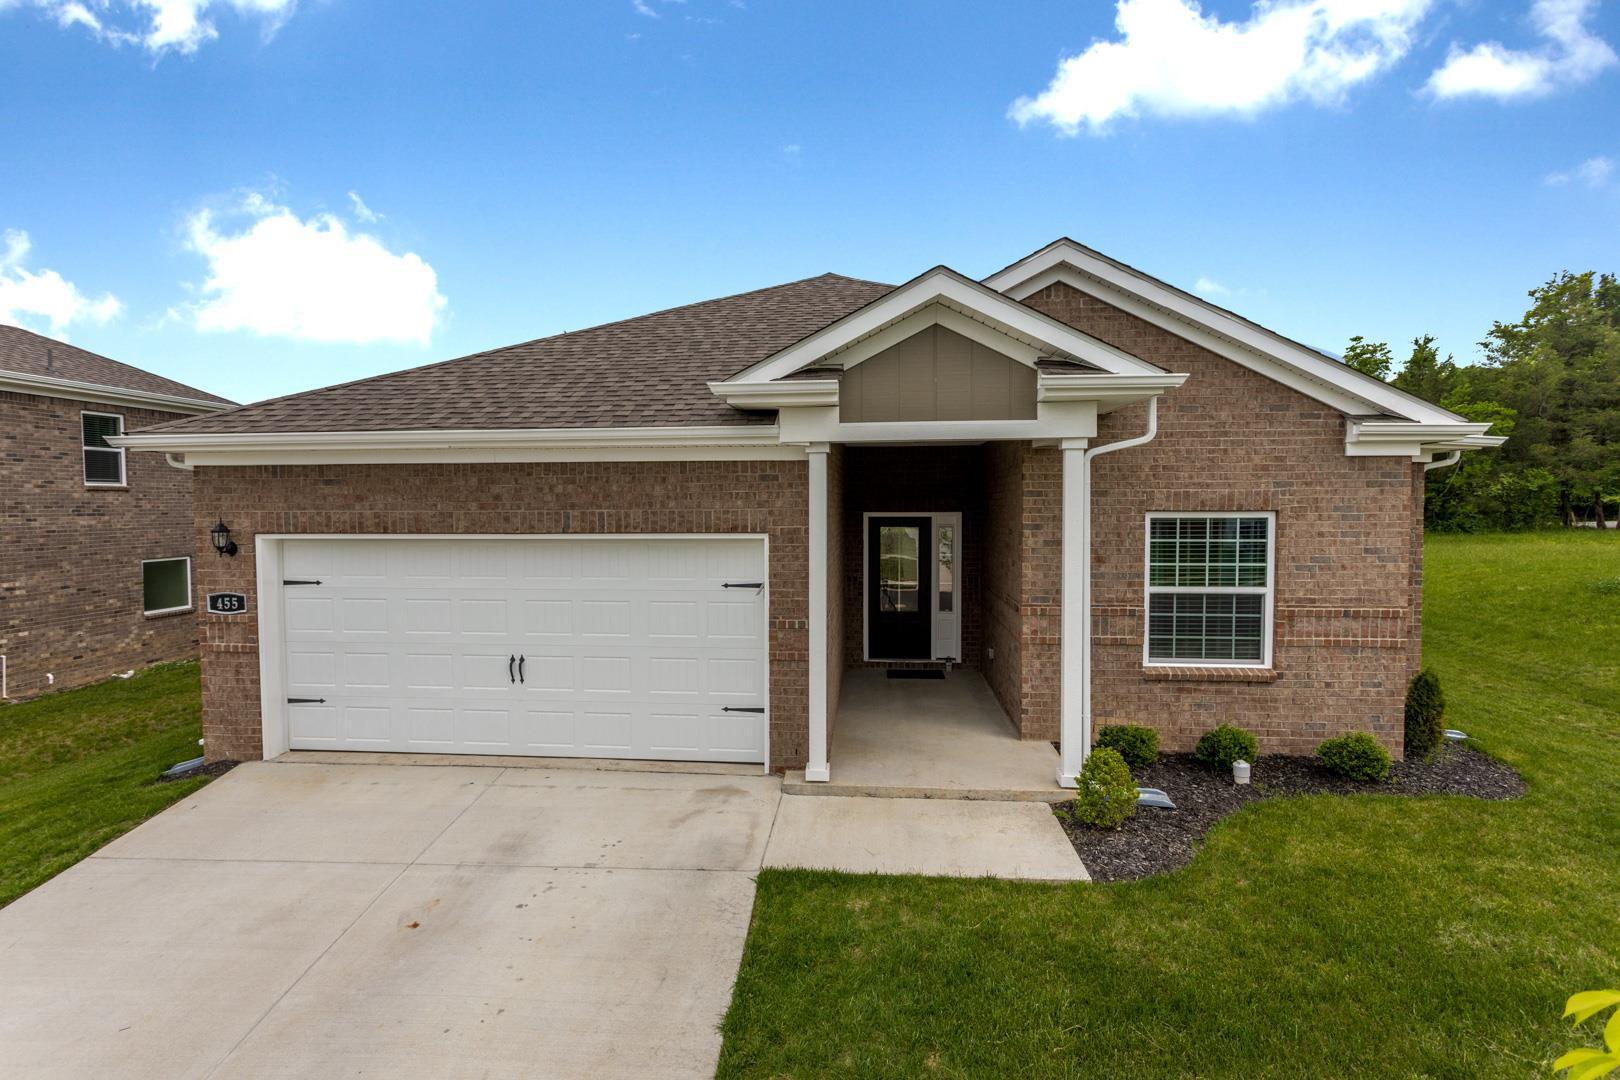 455 Bryce Canyon Way 37066 - One of Gallatin Homes for Sale